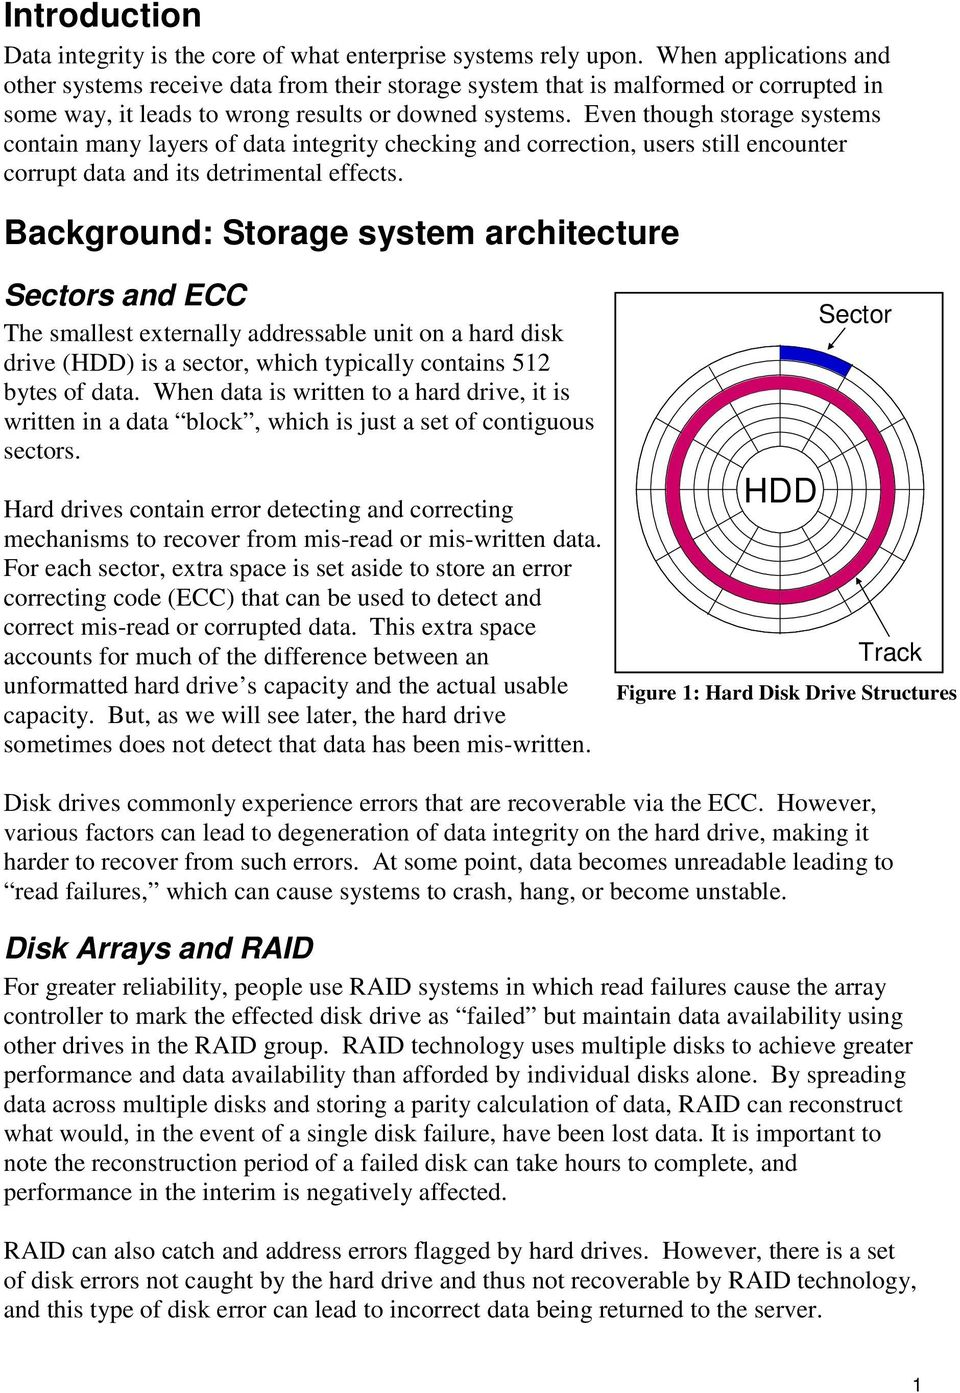 Silent data corruption in disk arrays: A solution - PDF